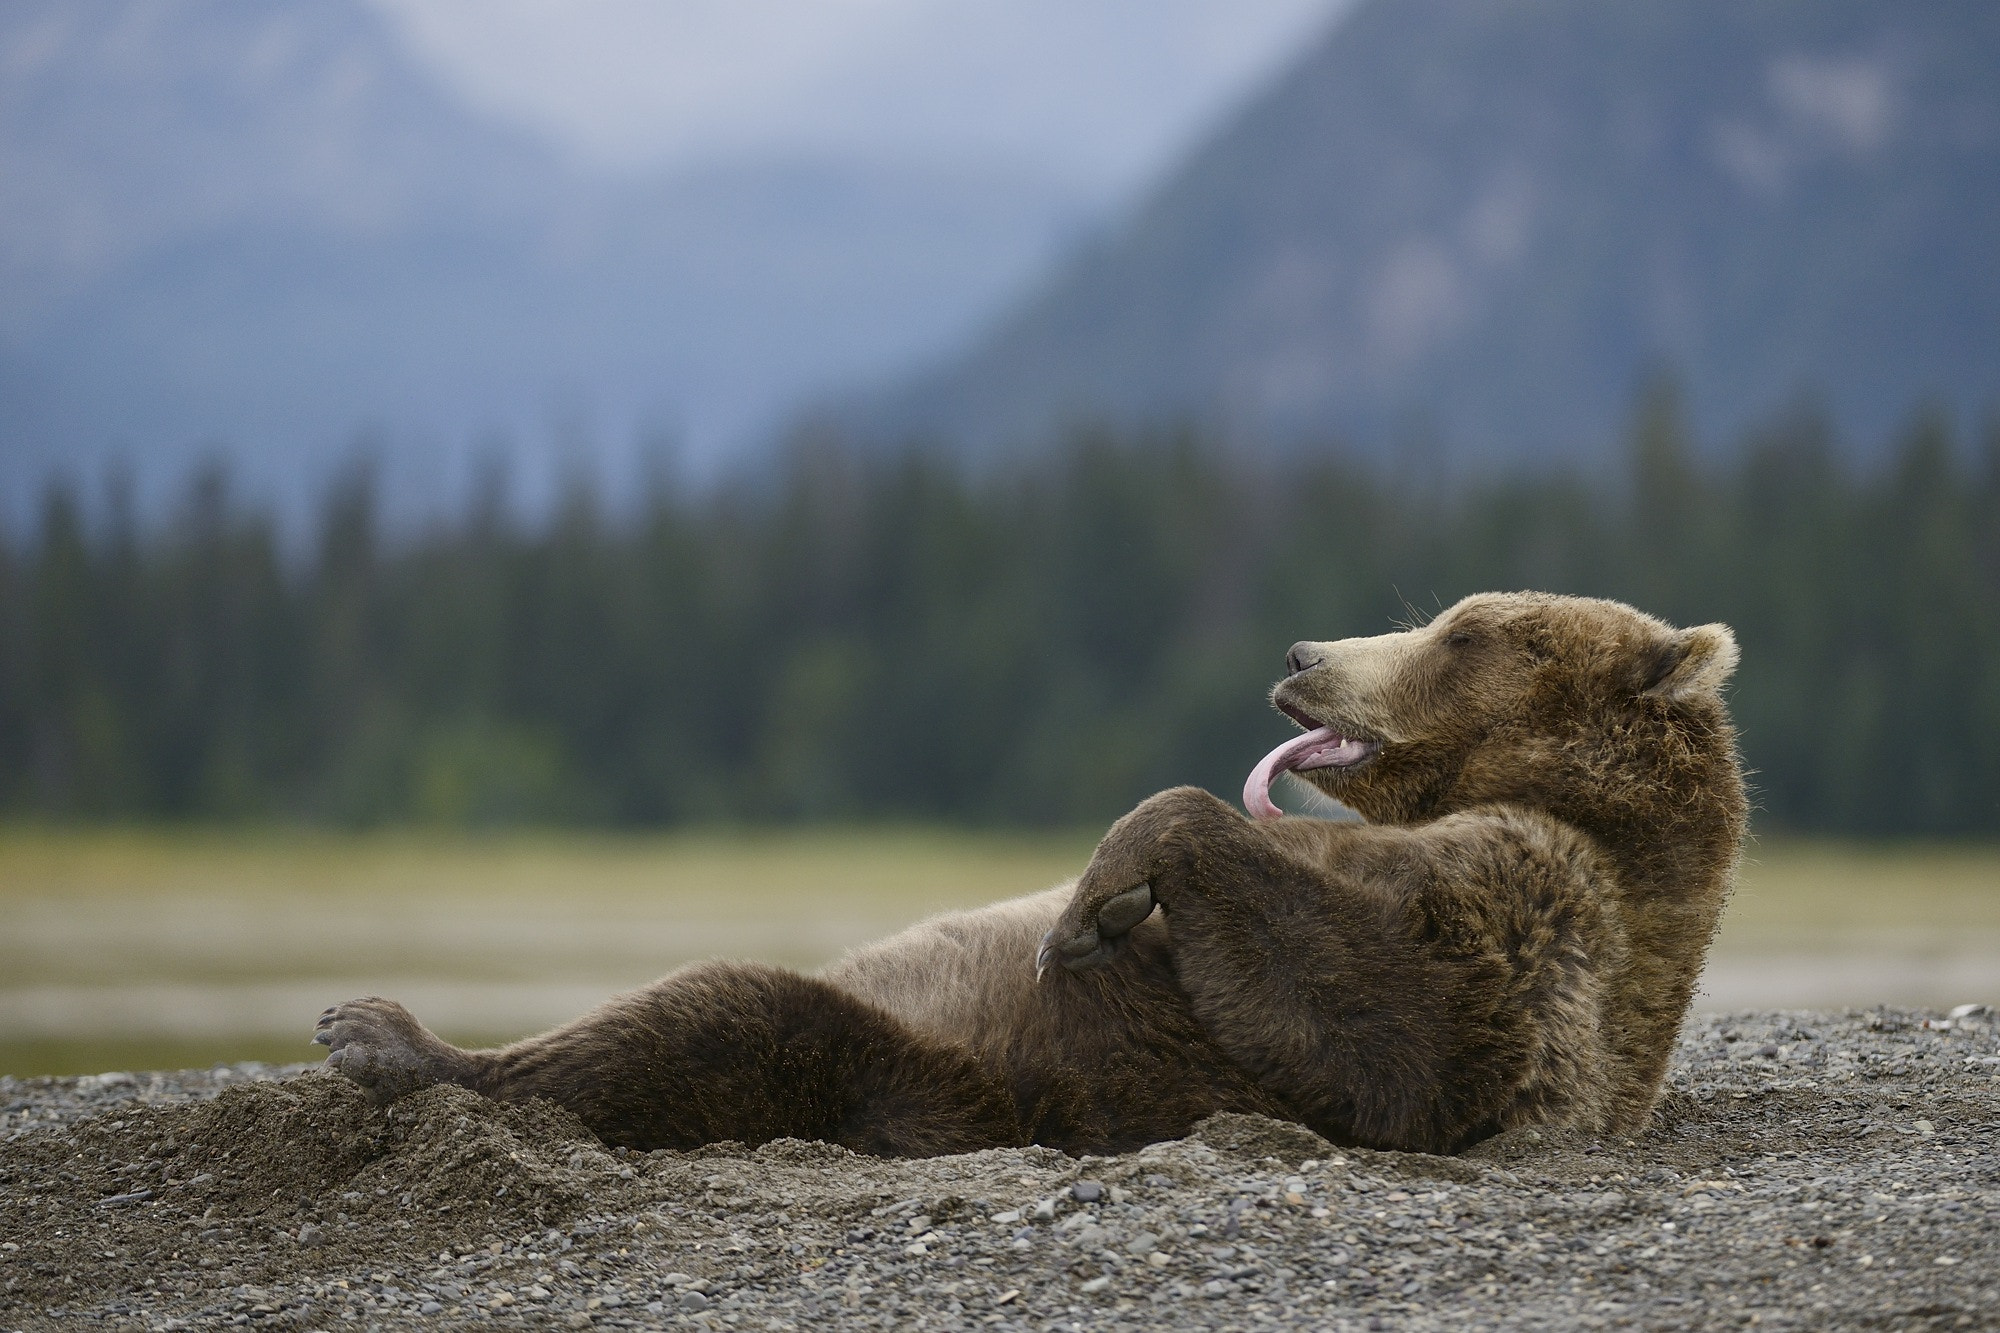 Photograph The Bear Tongue by Olav  Thokle on 500px